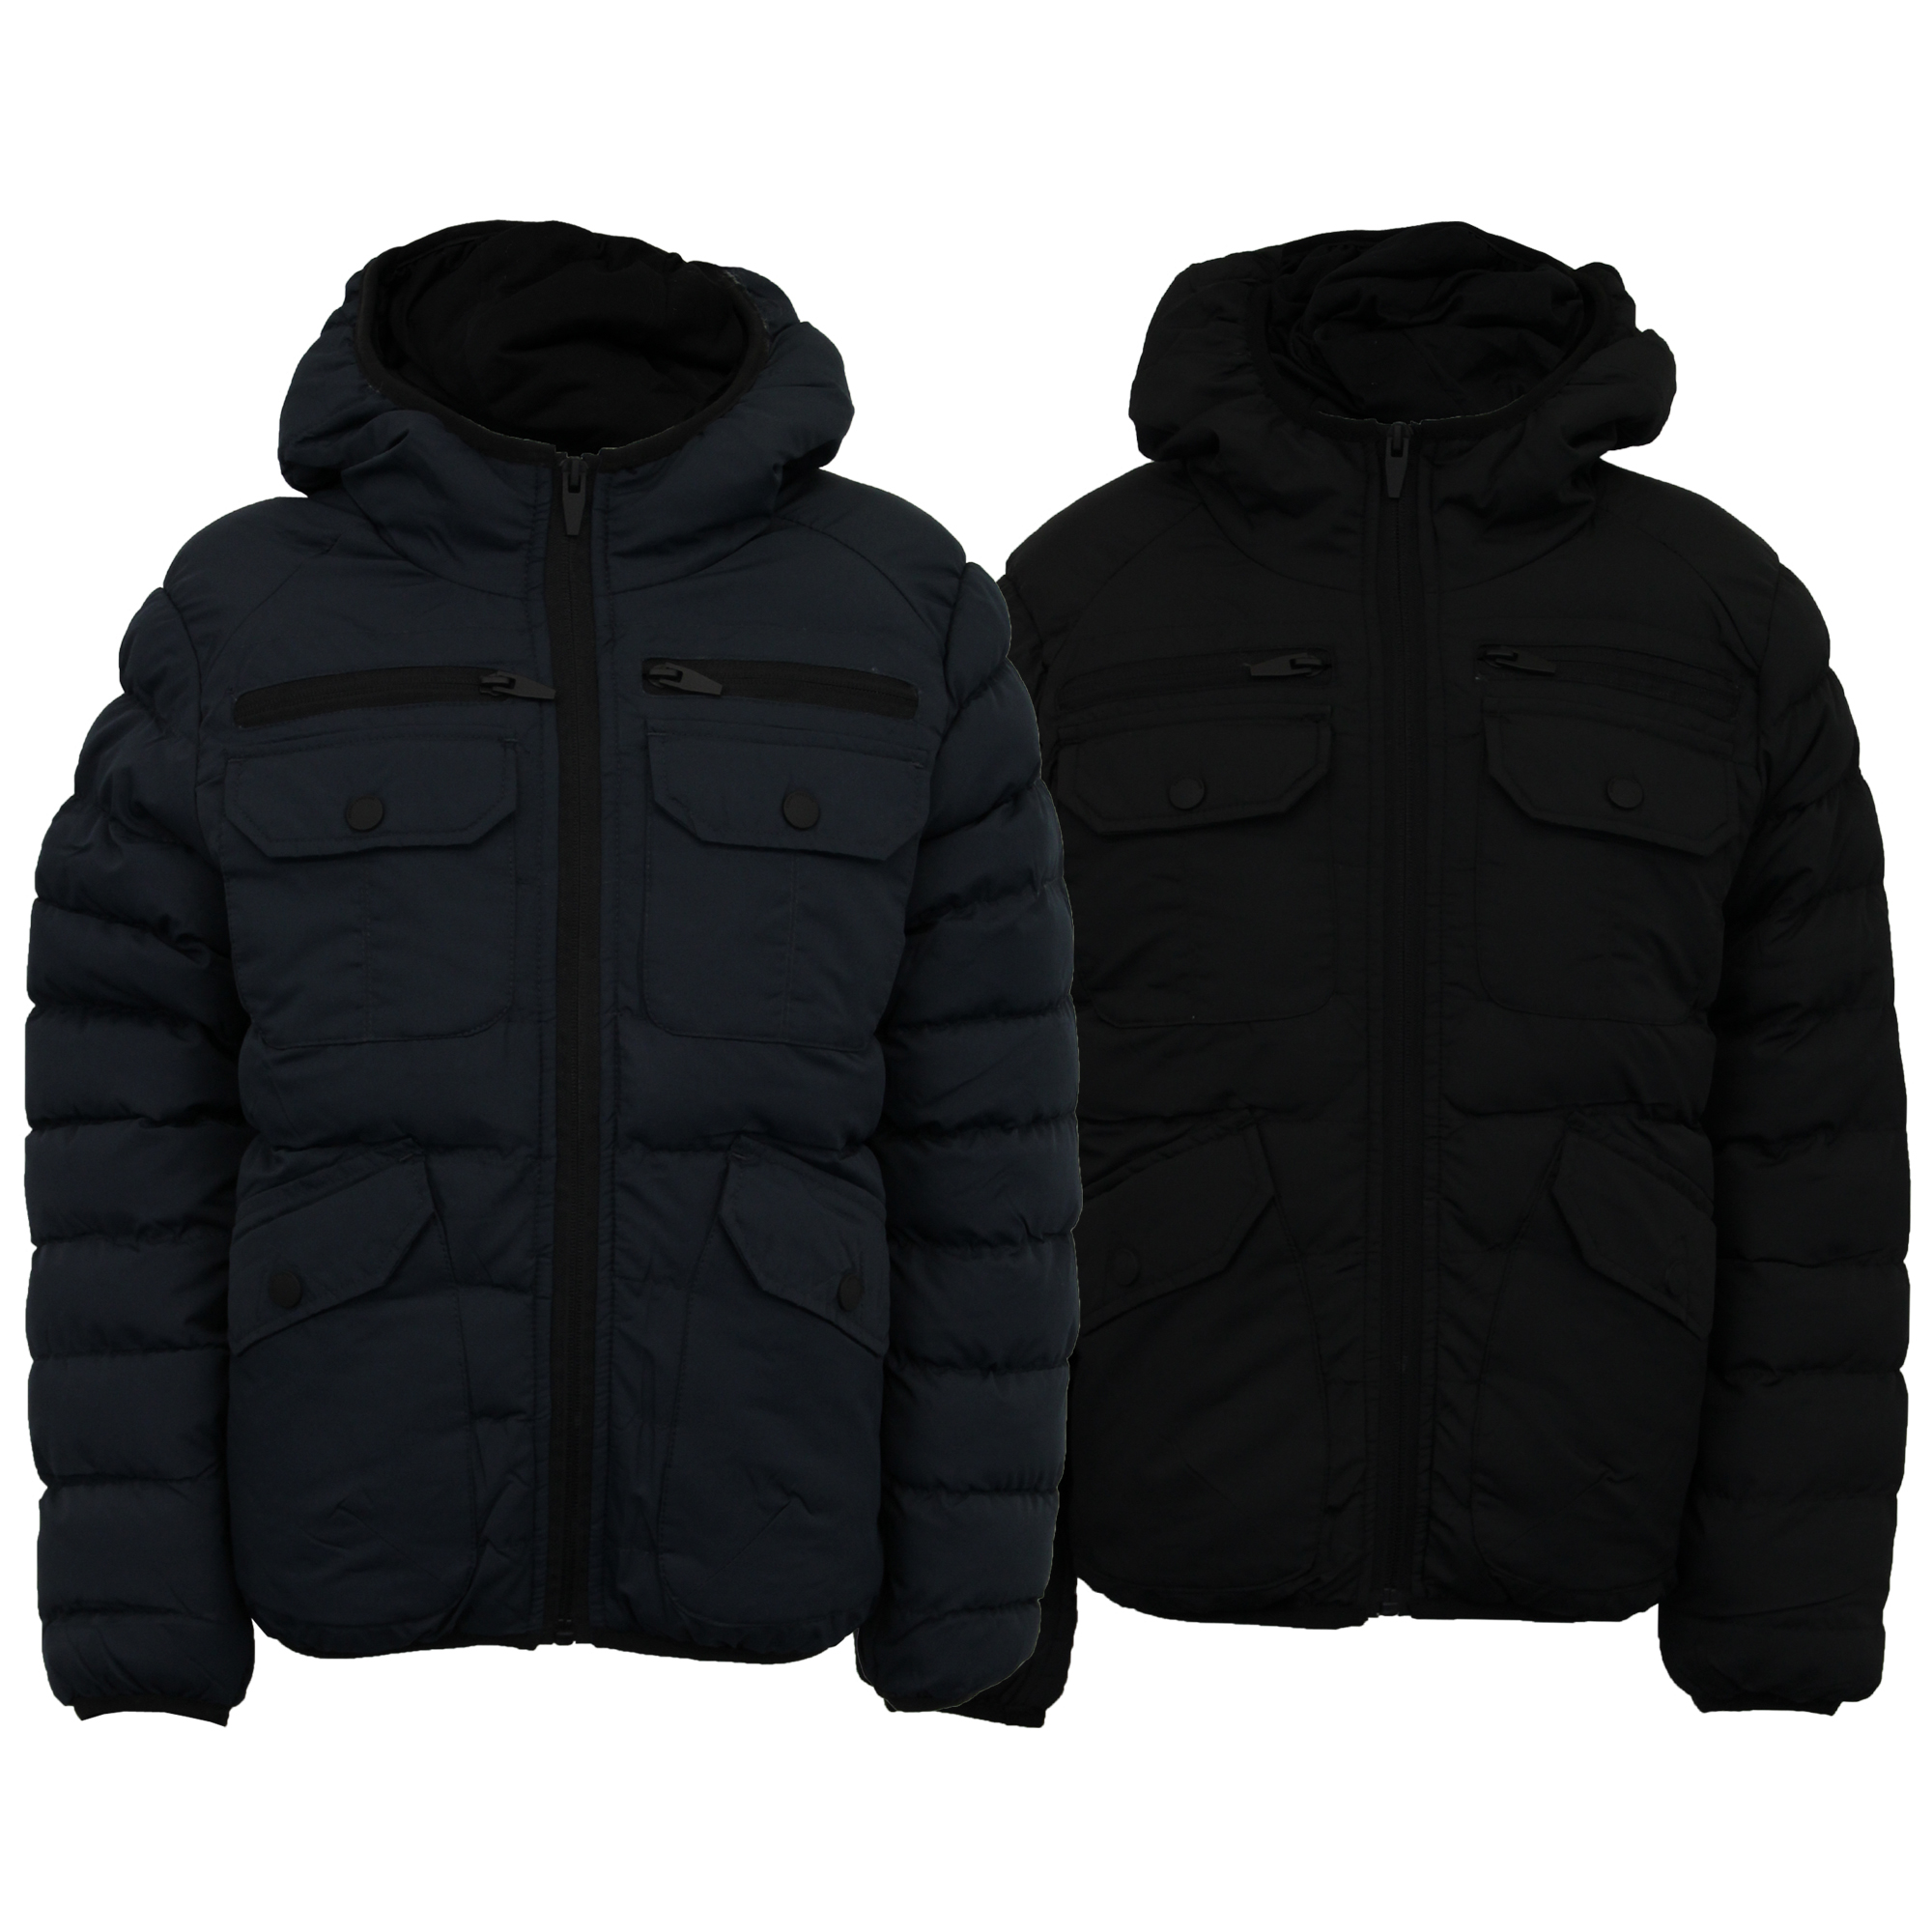 7a3ce1e32e17 Boys Padded Jacket Brave Soul Coat Kids School Quilted Hooded Casual ...